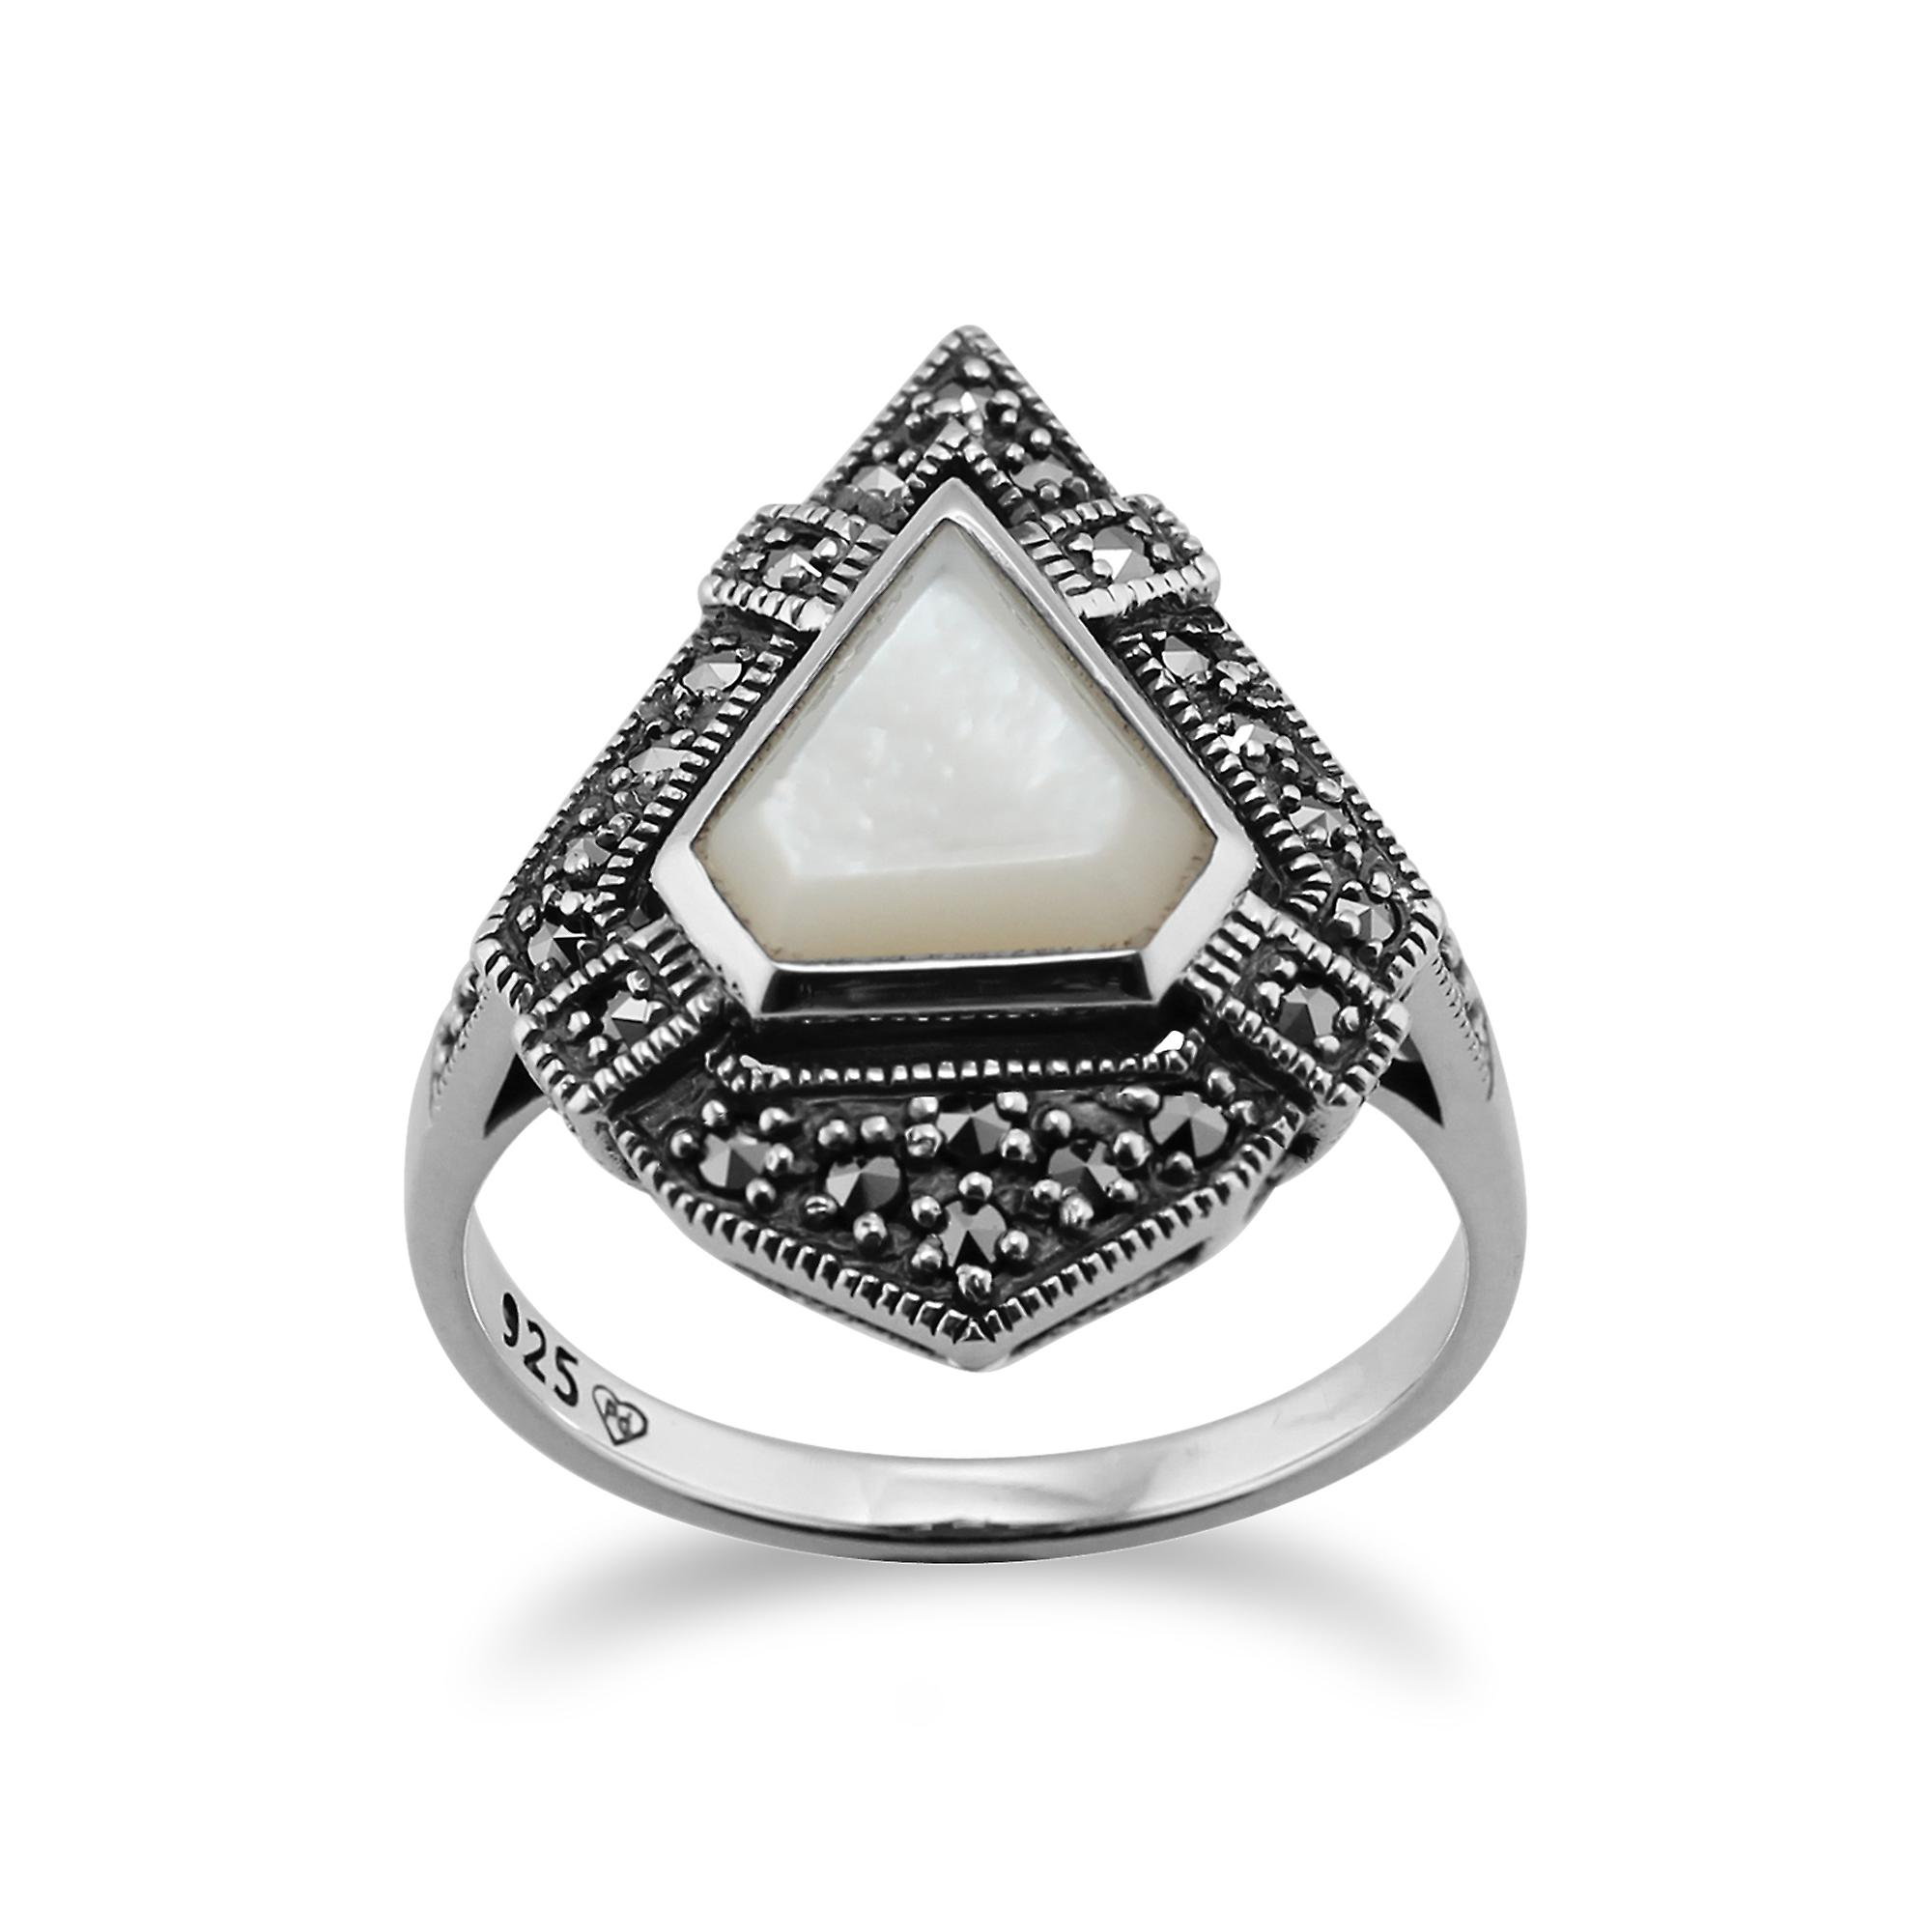 Gemondo Art Deco Style Ring, 925 Sterling Silver 1.50ct Mother of Pearl & 0.28ct Marcasite Ring